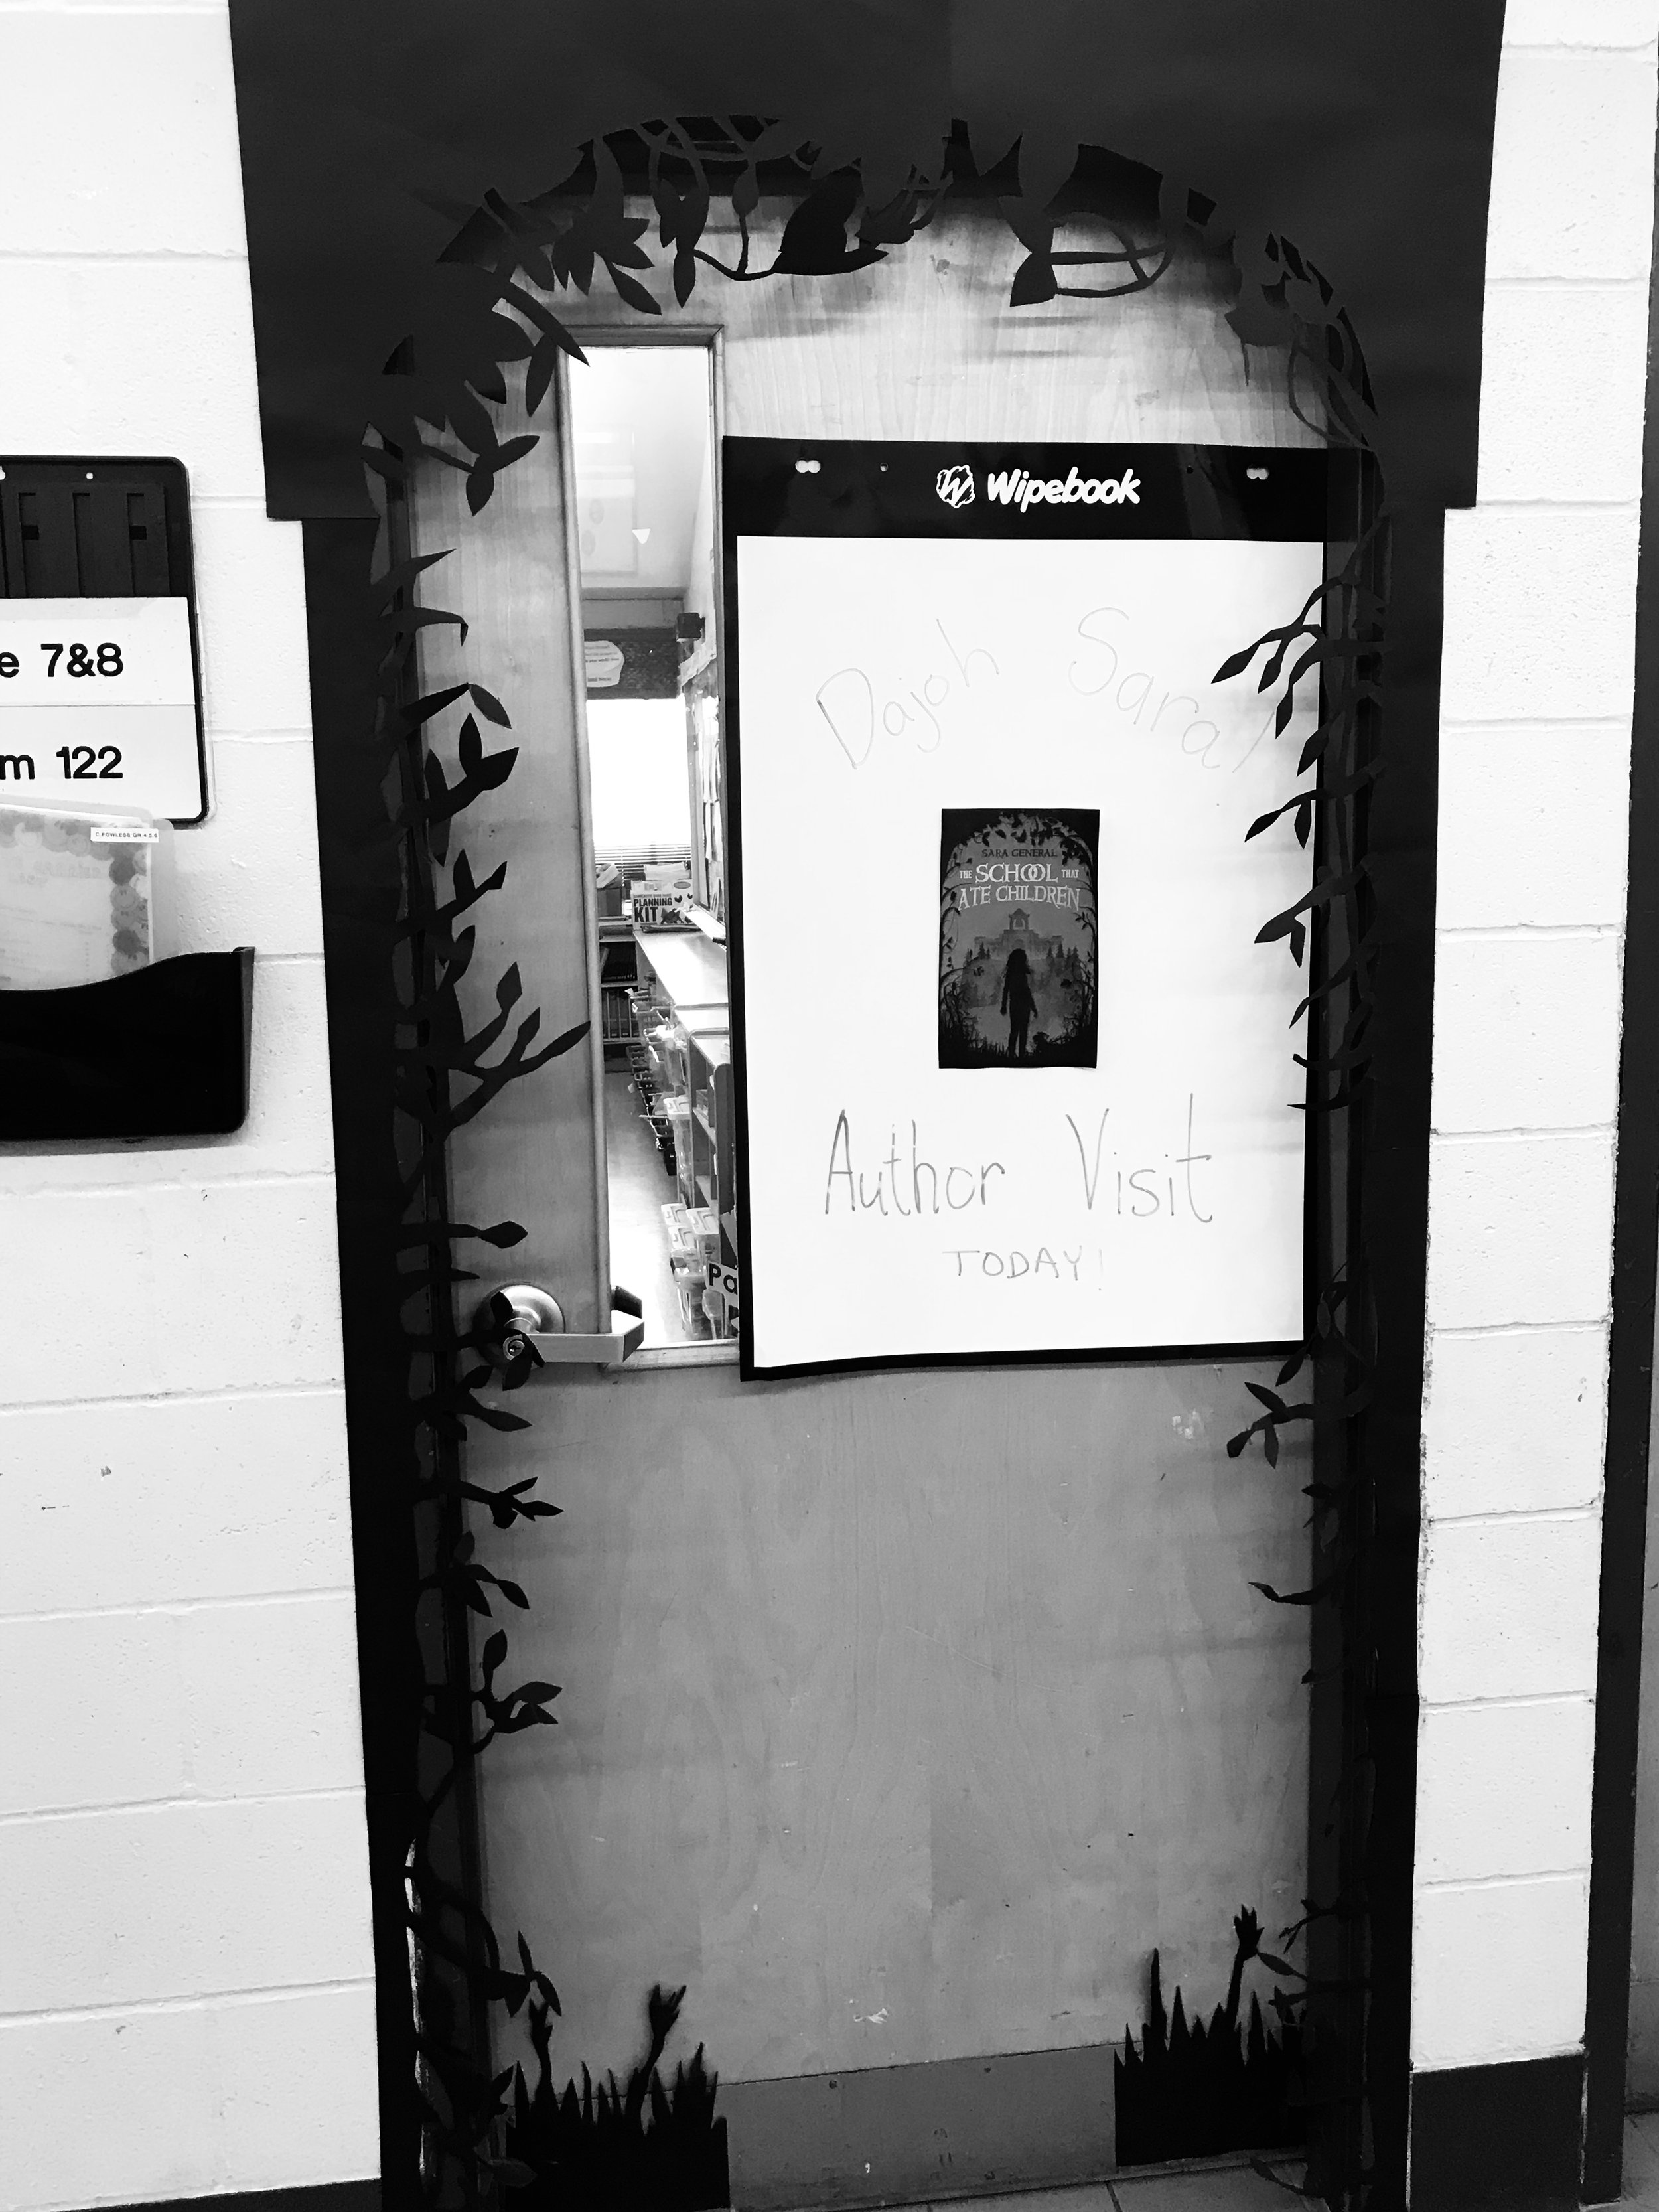 The students decorated the door like the cover of the book!